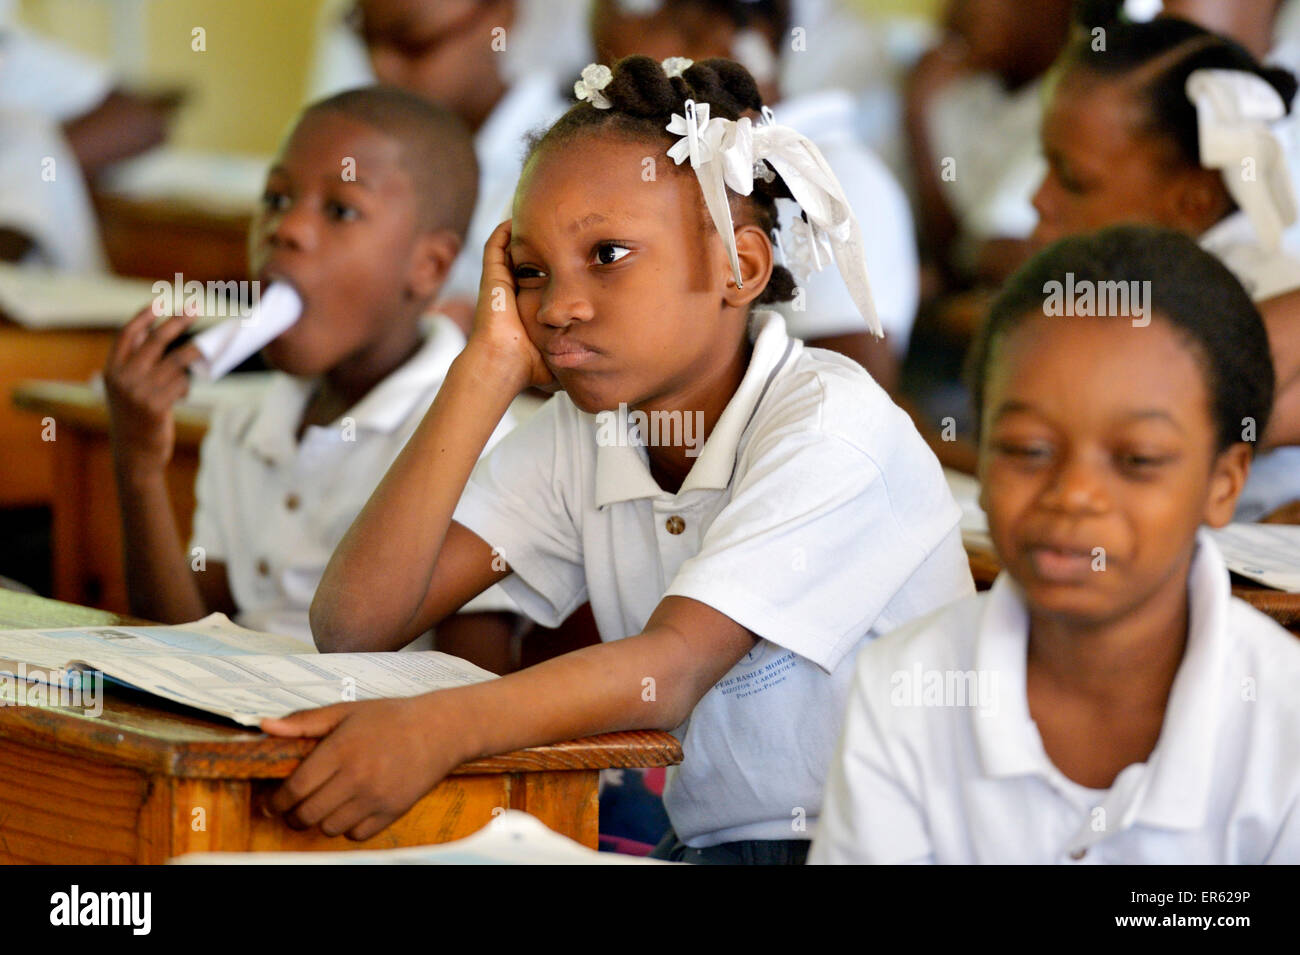 Schoolgirl with sullen facial expression during class, Port-au-Prince, Ouest Department, Haiti - Stock Image